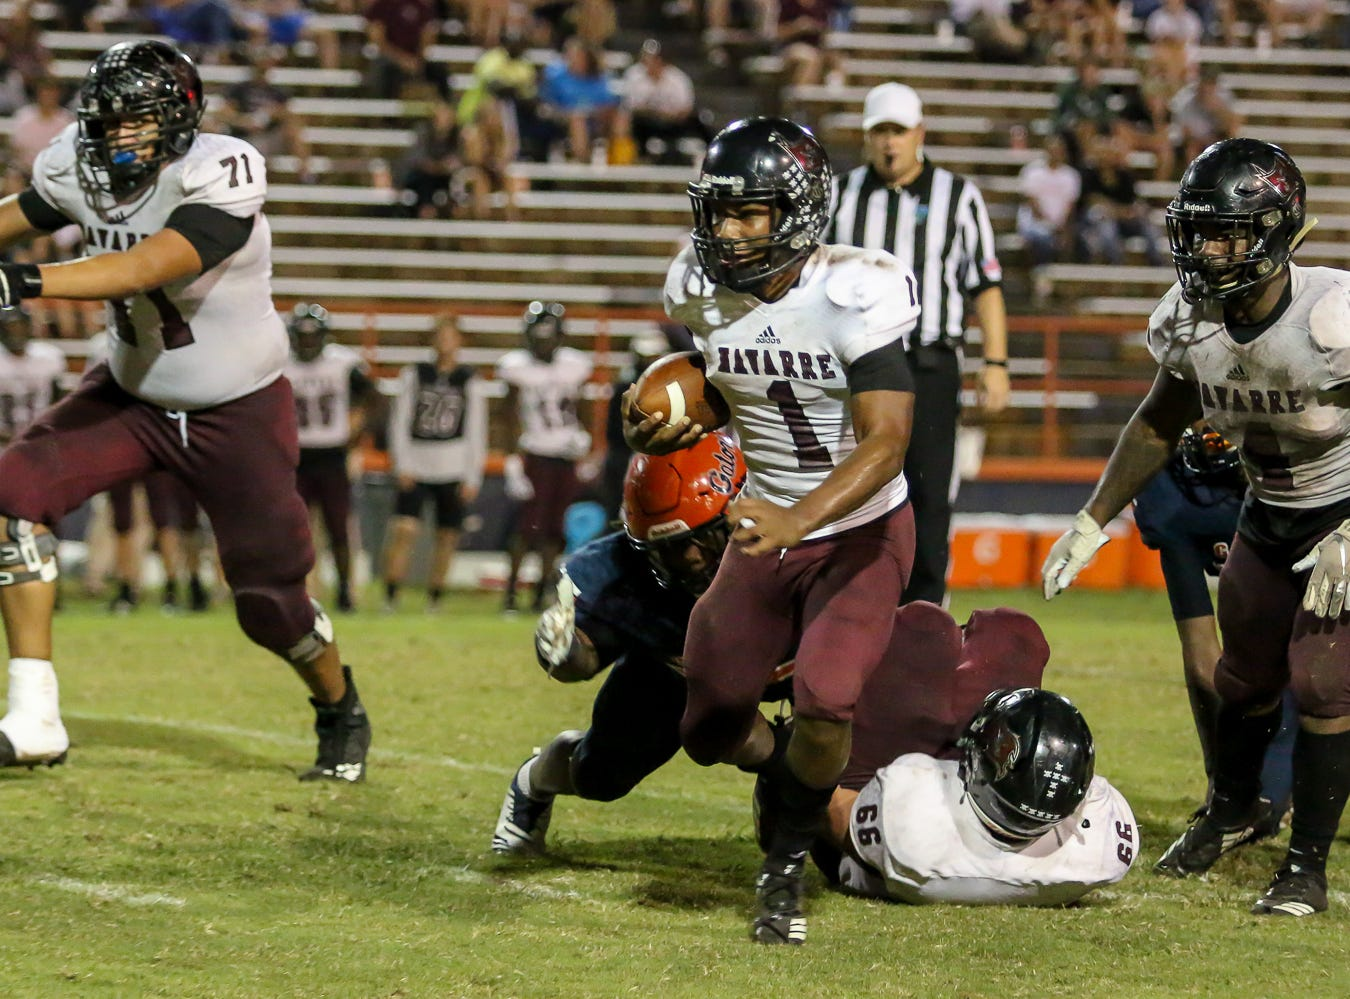 Navarre quarterback Marlon Courtney III (1) keeps the ball and runs against the Gators in the homecoming game at Escambia High School on Friday, October 5, 2018.